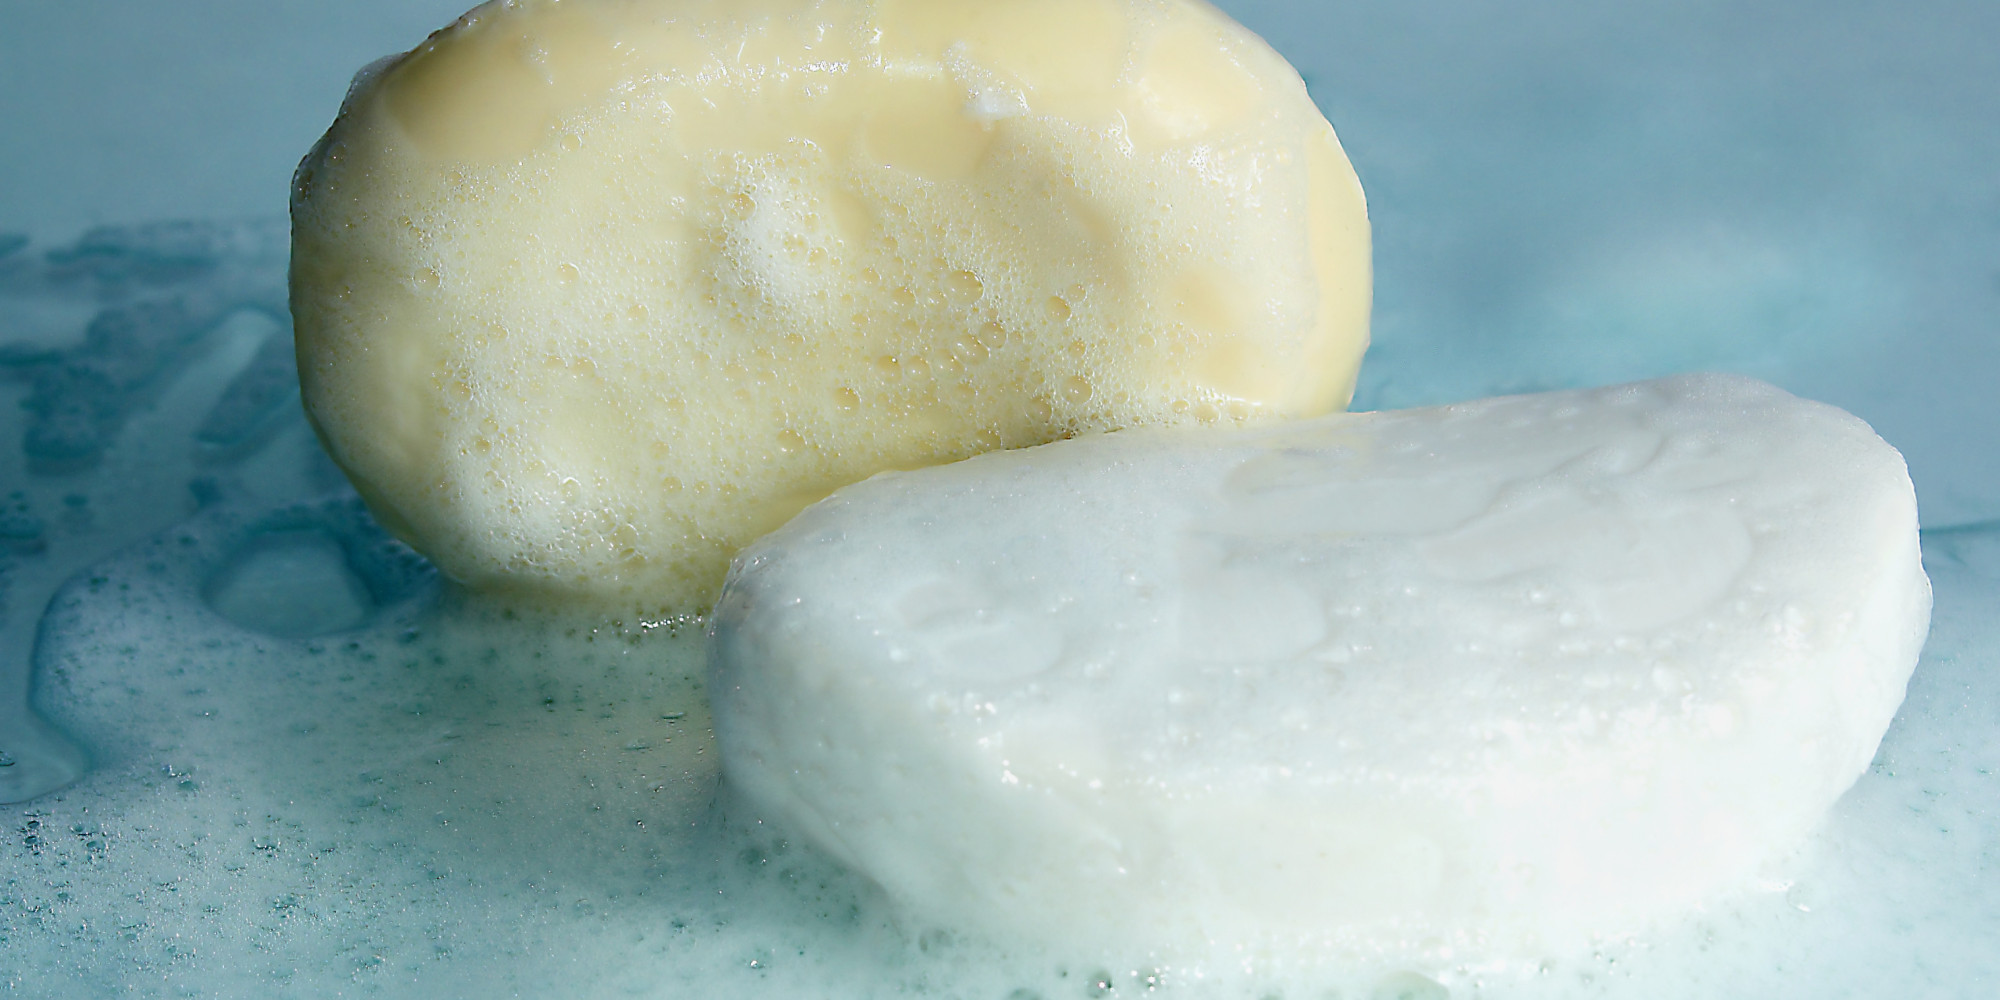 http://www.huffingtonpost.com/2014/12/24/germs-bar-of-soap_n_6349934.html?utm_hp_ref=health-fitness&ir=Health+and+Fitness